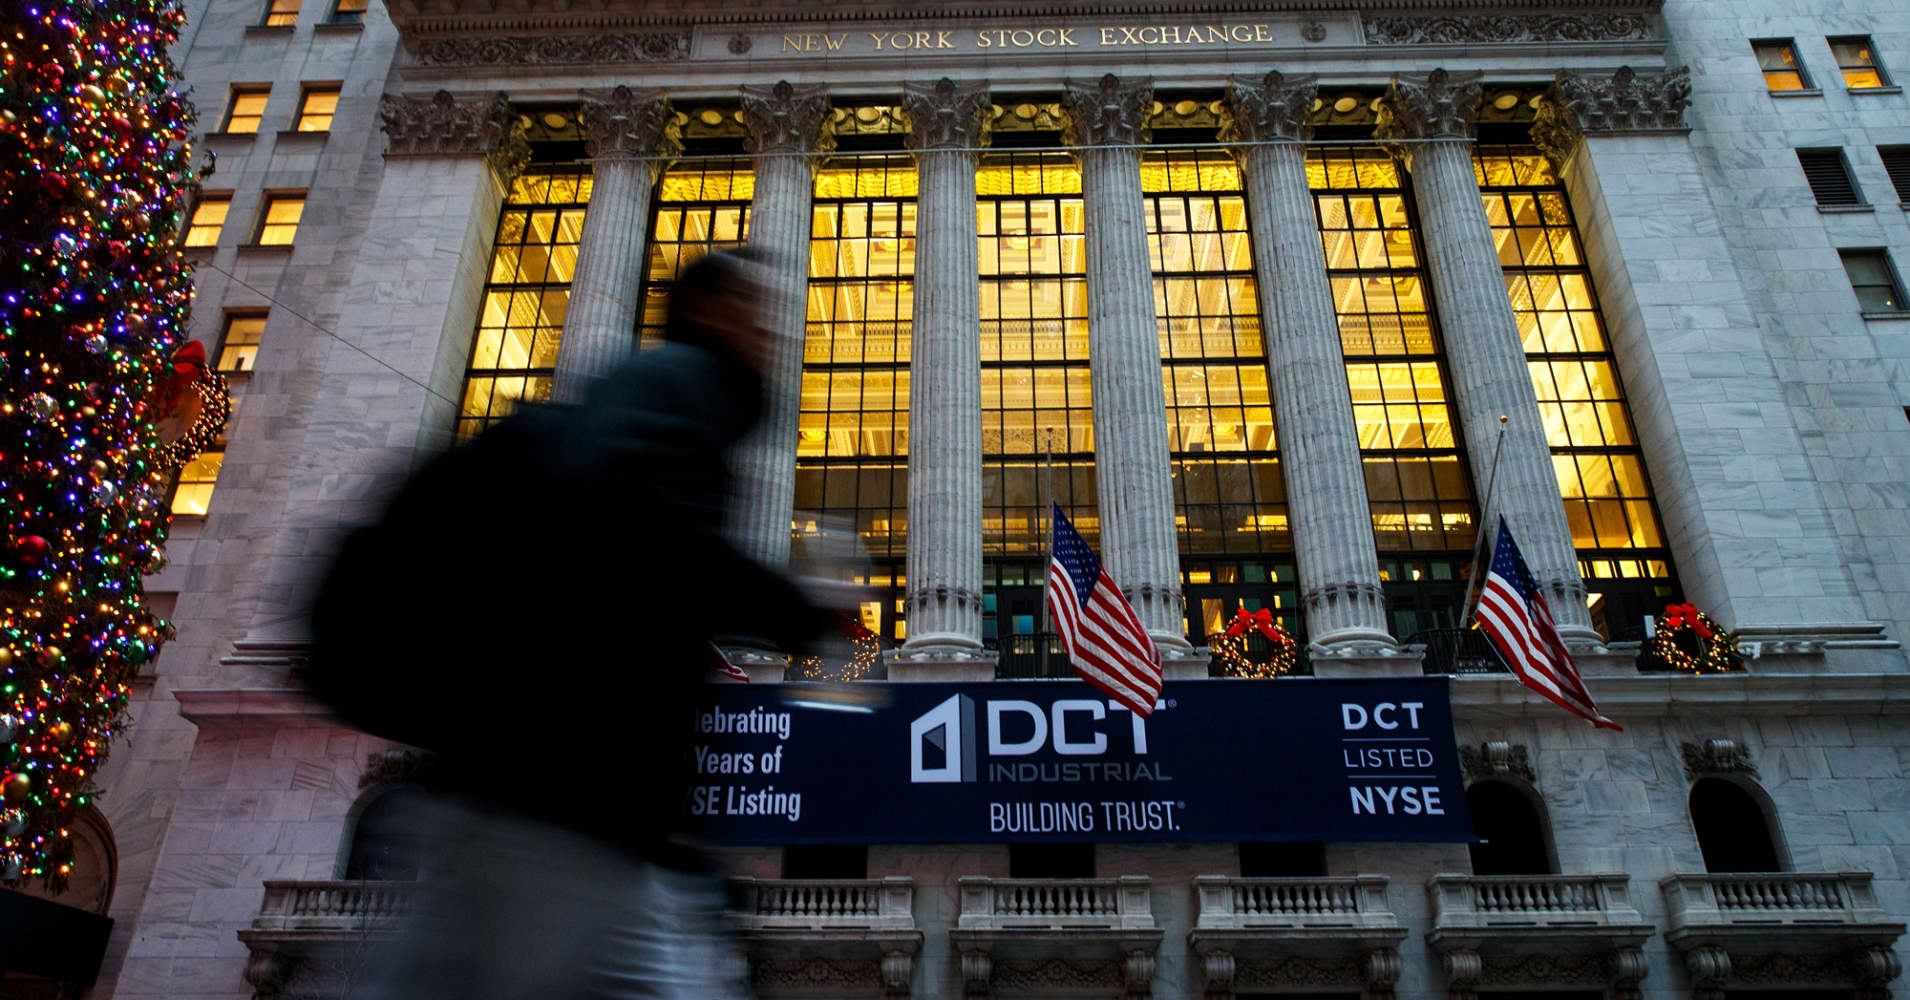 Trading resumes on NYSE Arca after technical issue is resolved